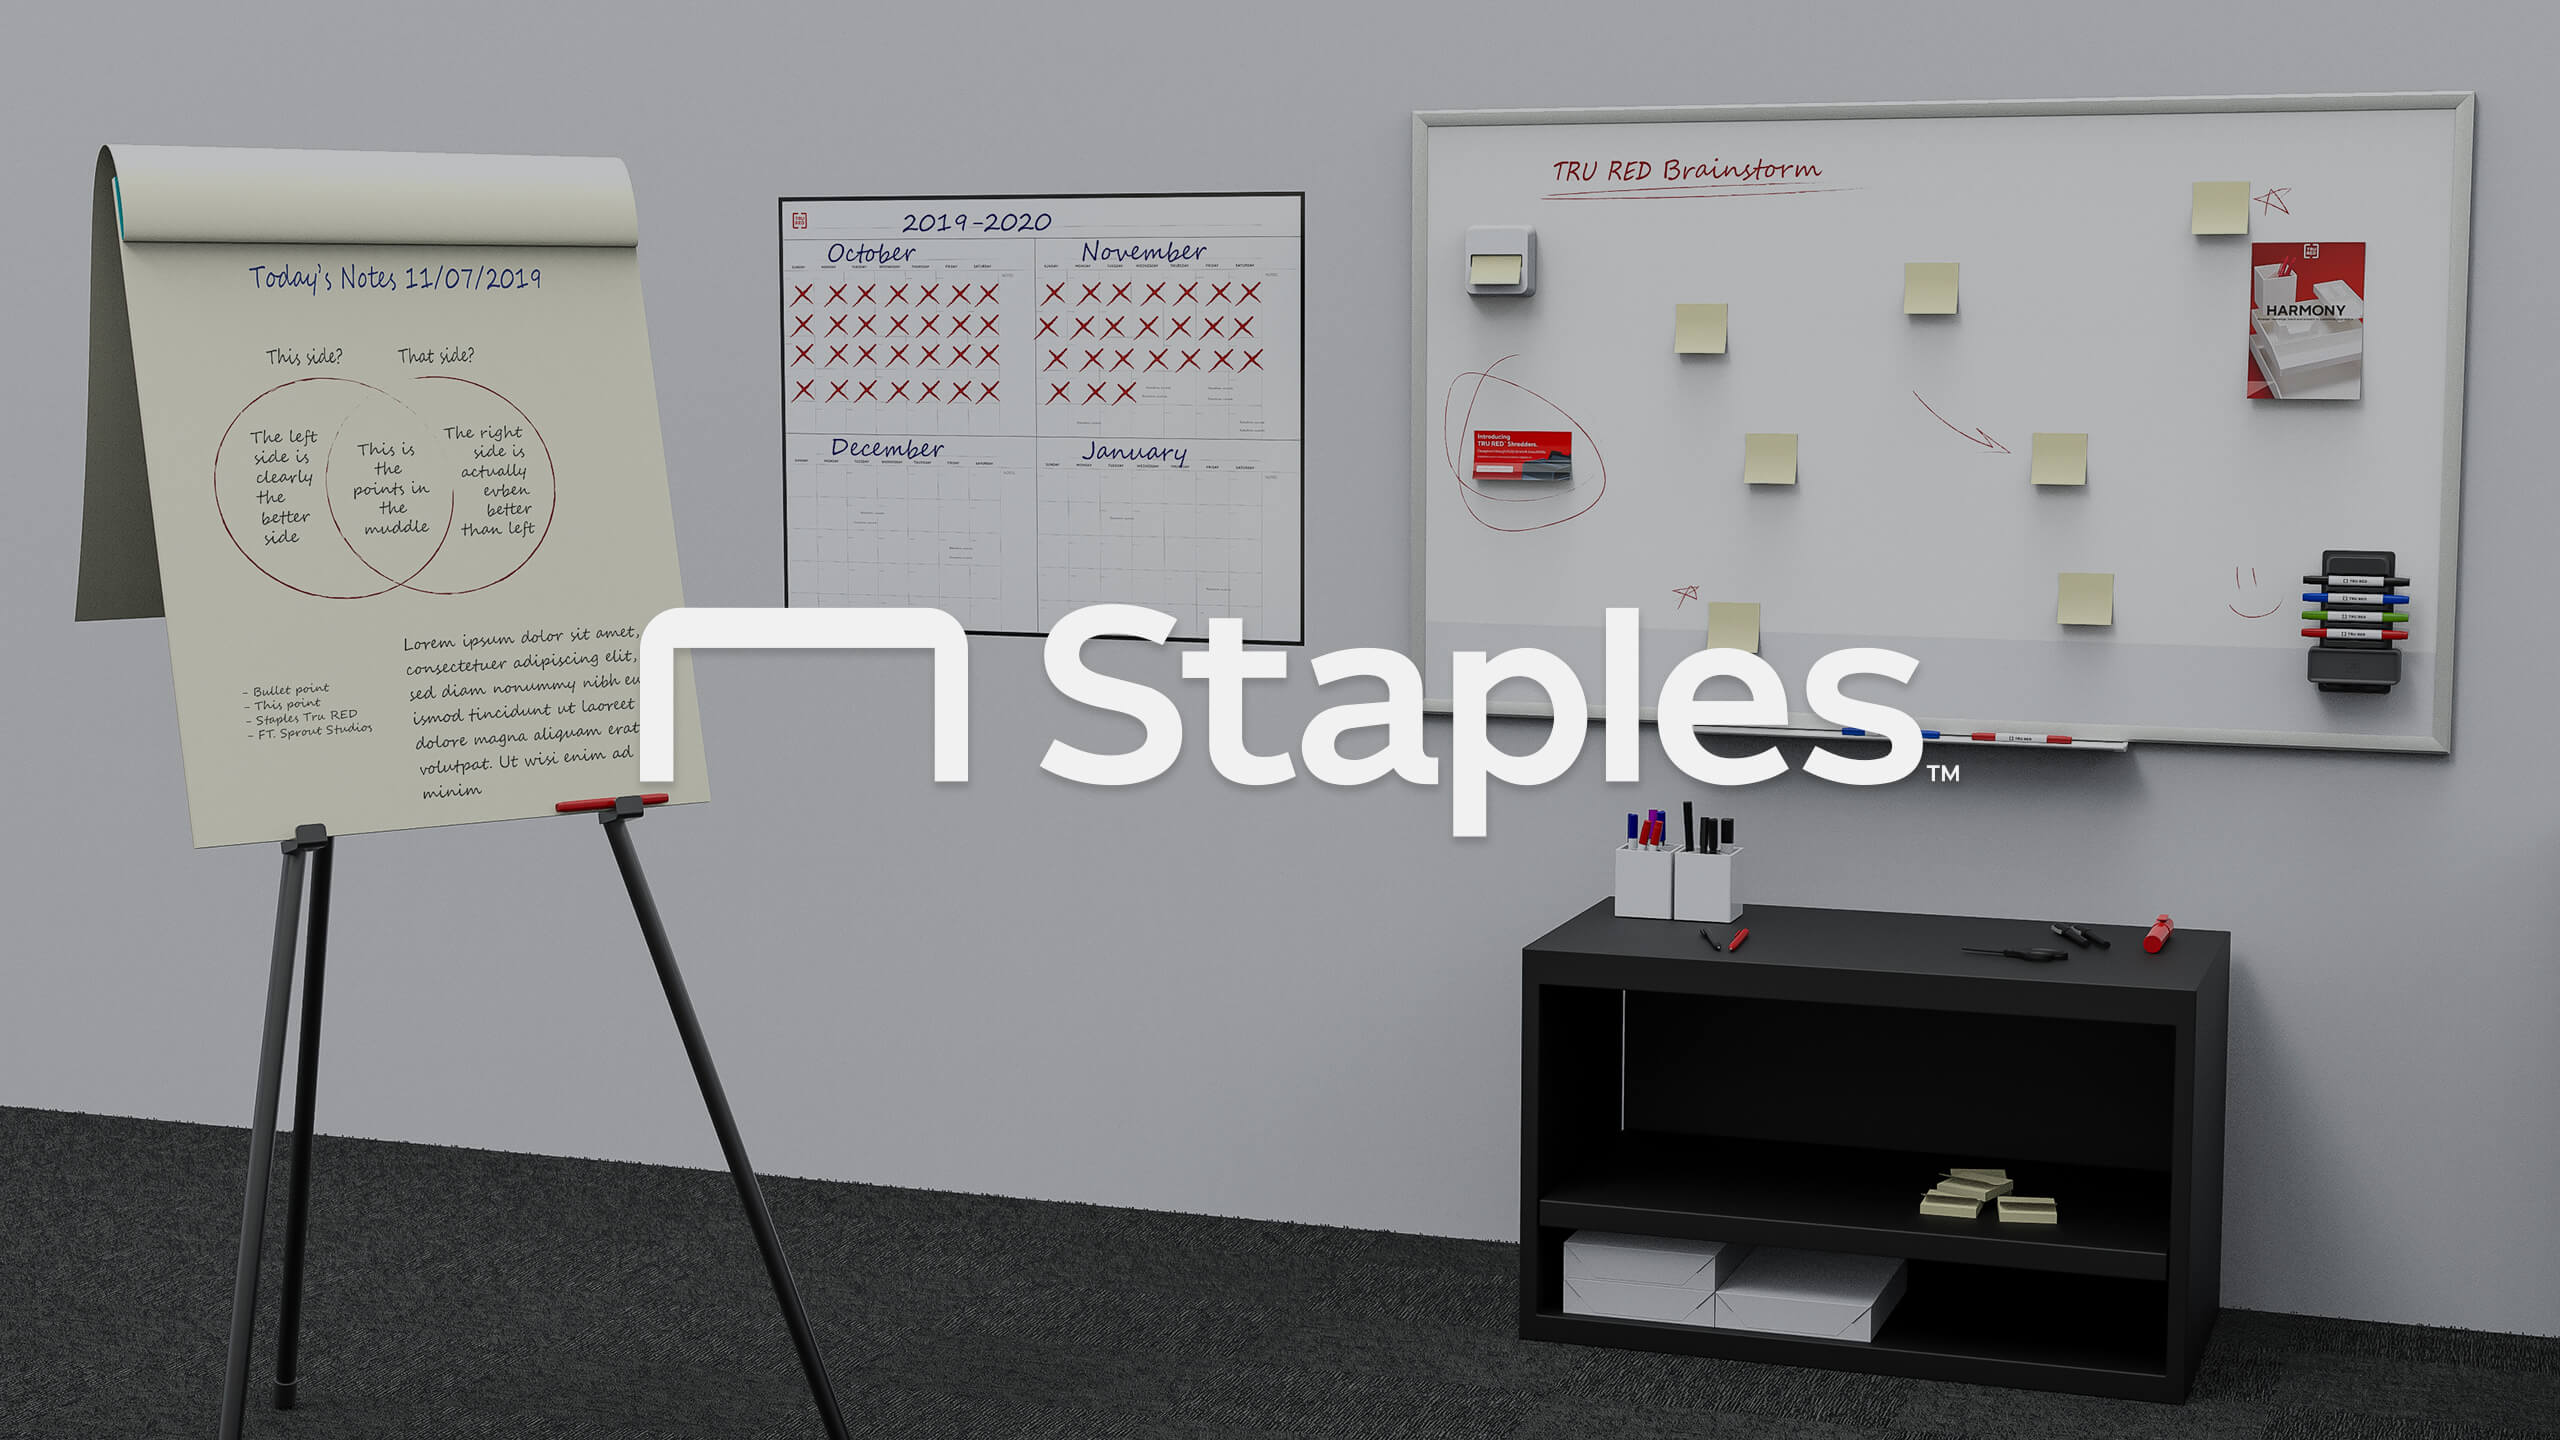 White Staples logo on top of a 3D CAD Render by Sprout Studios of an office setting